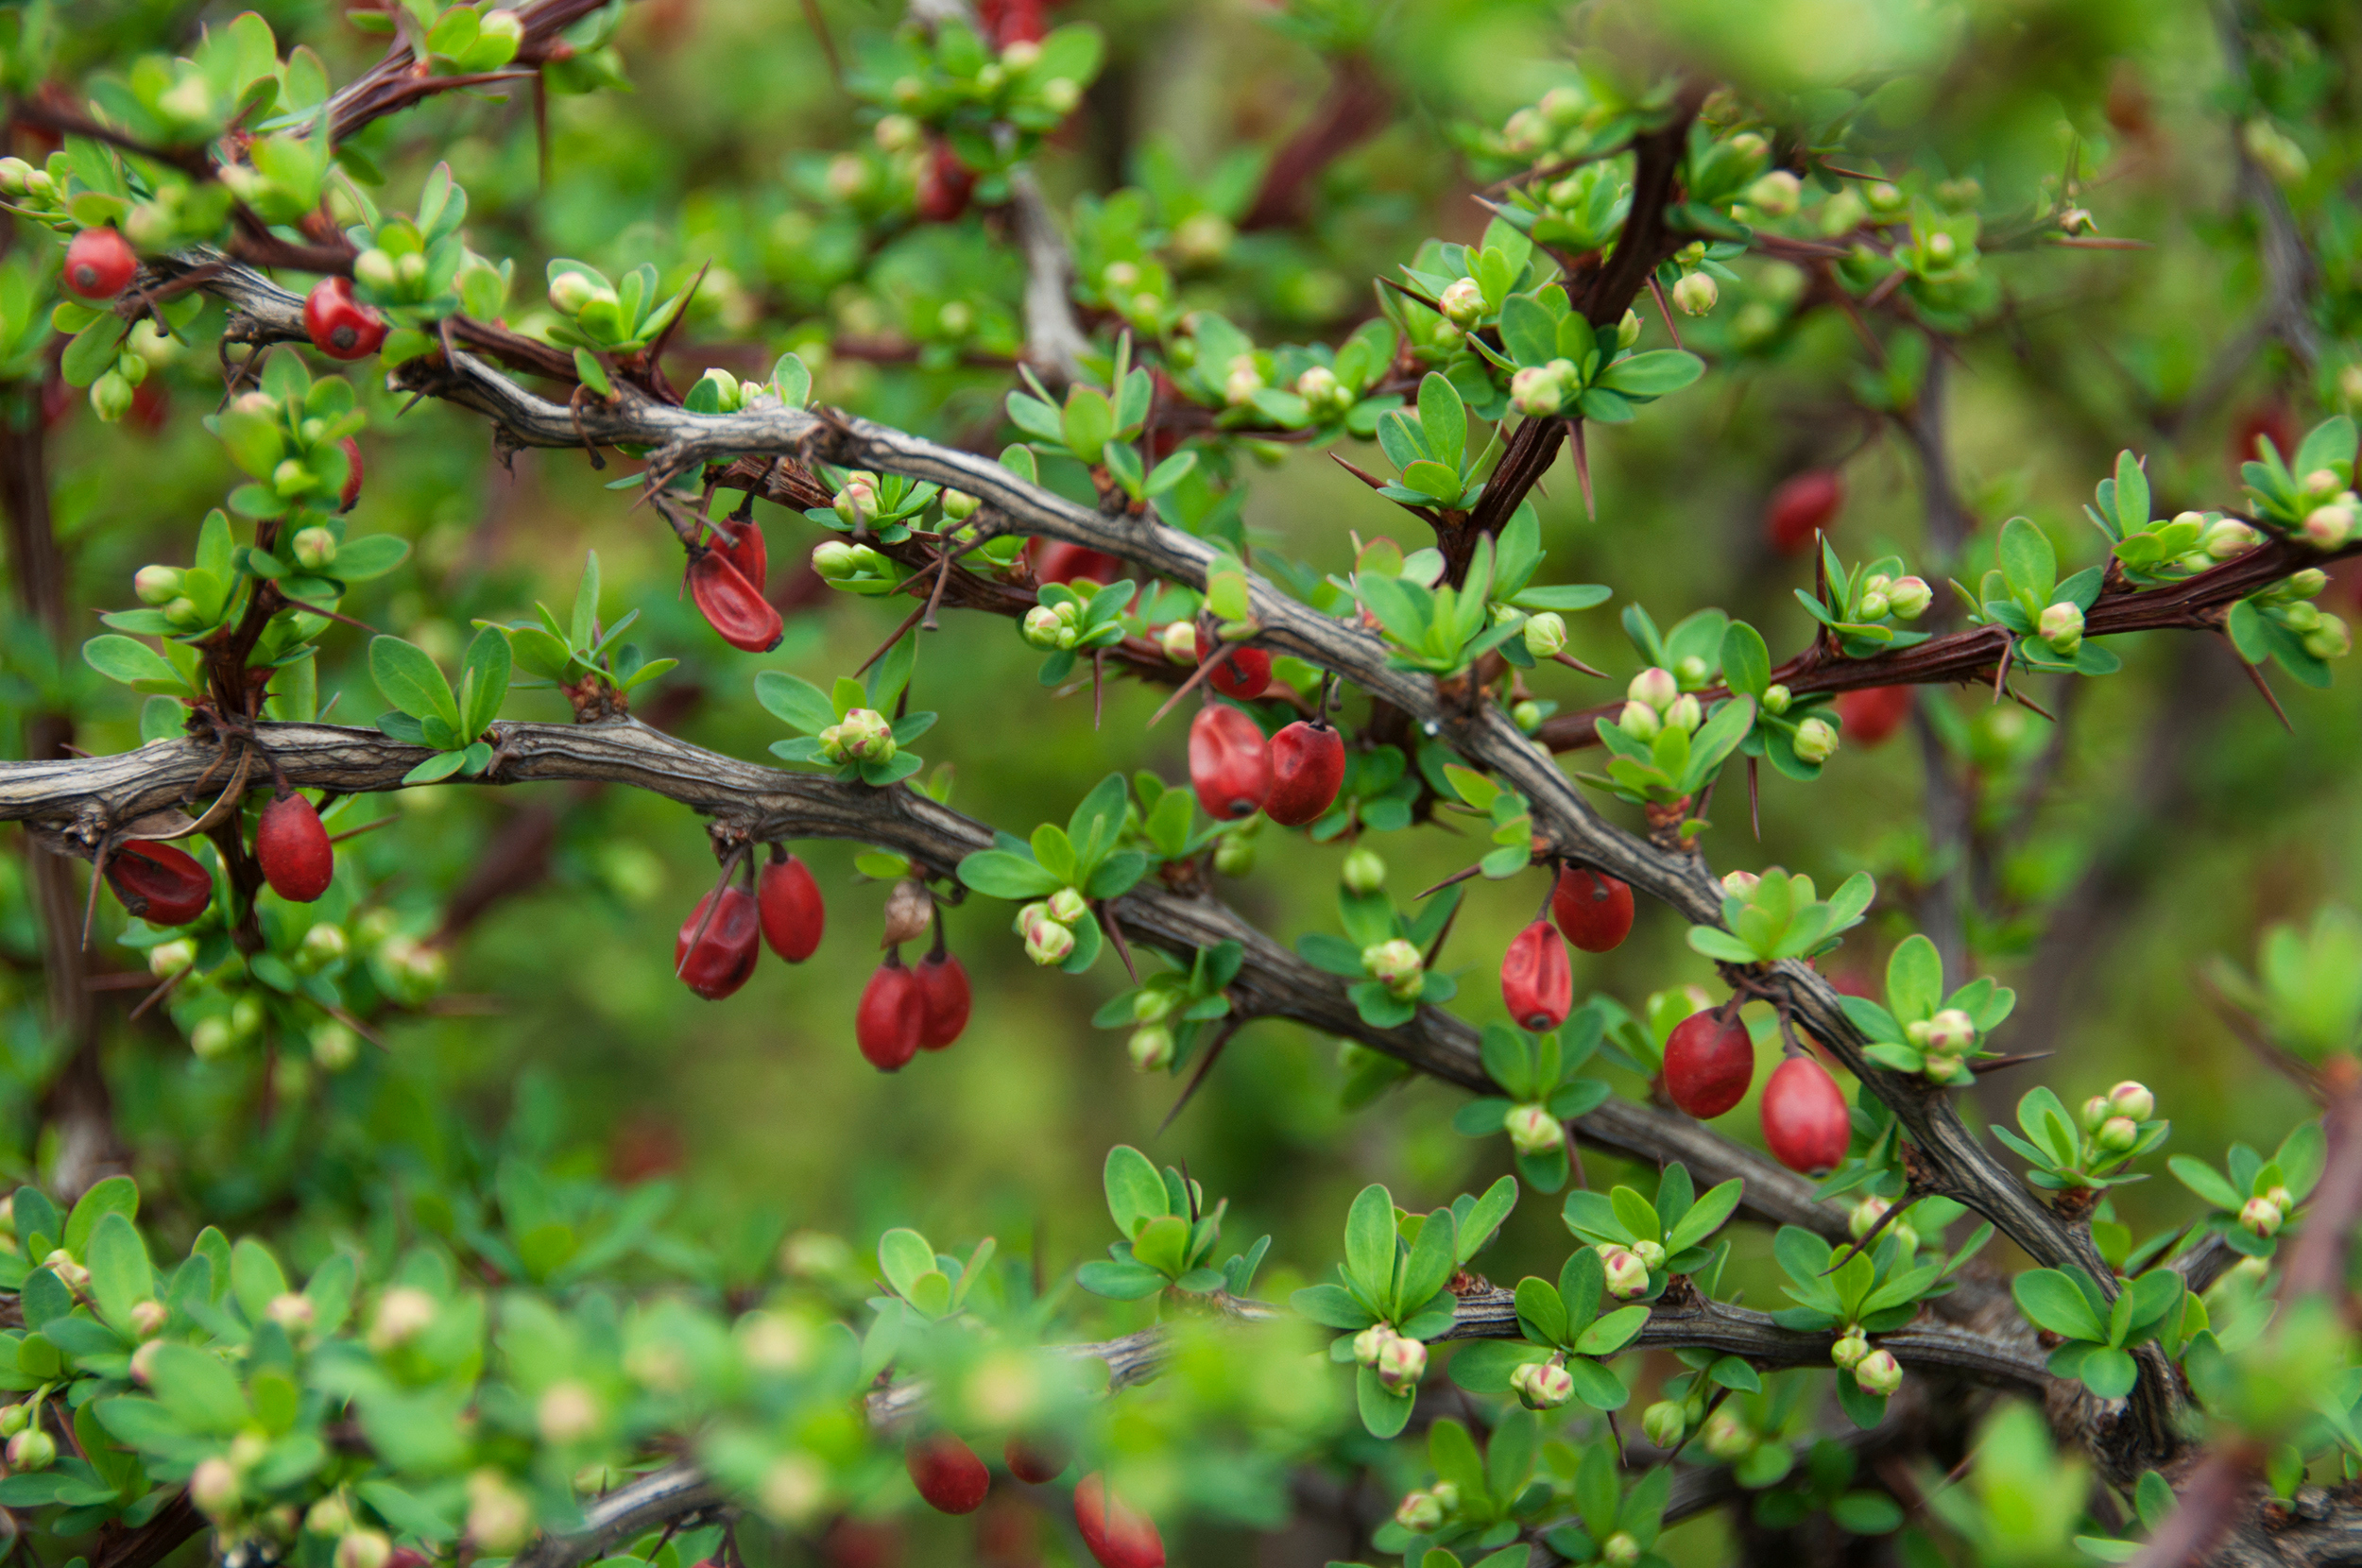 Invasive Japanese Barberry to Spread Further with Climate Change